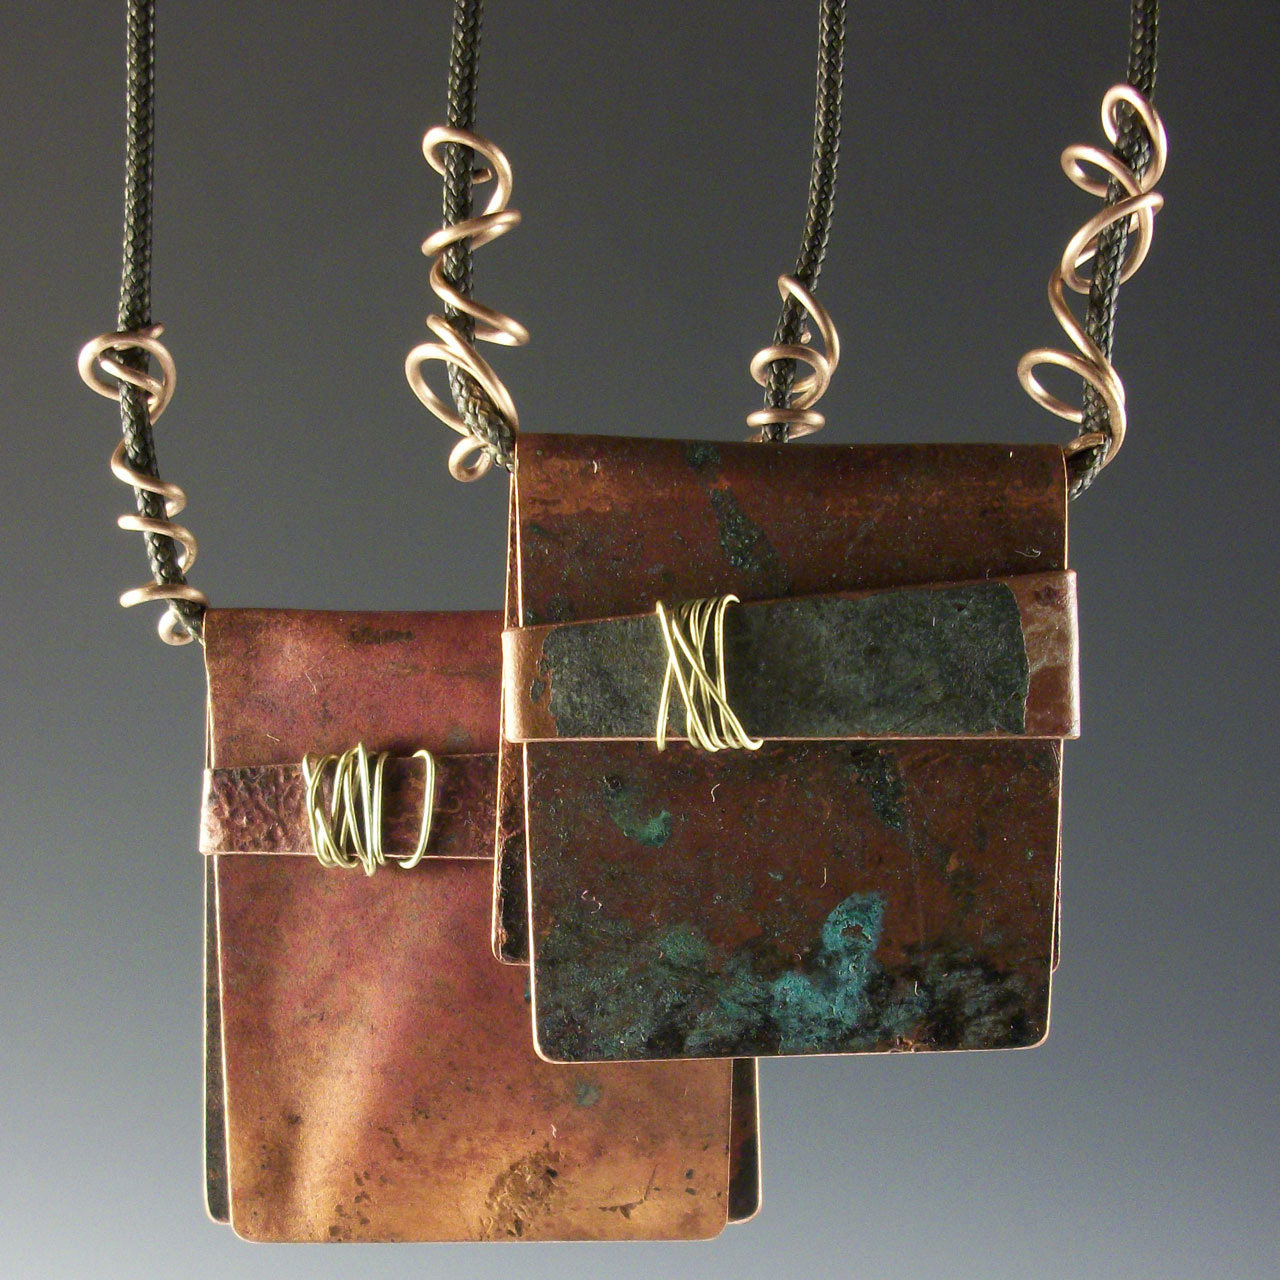 Copper Clutch Bag Necklace by McKenna Hallet mixed metal necklace